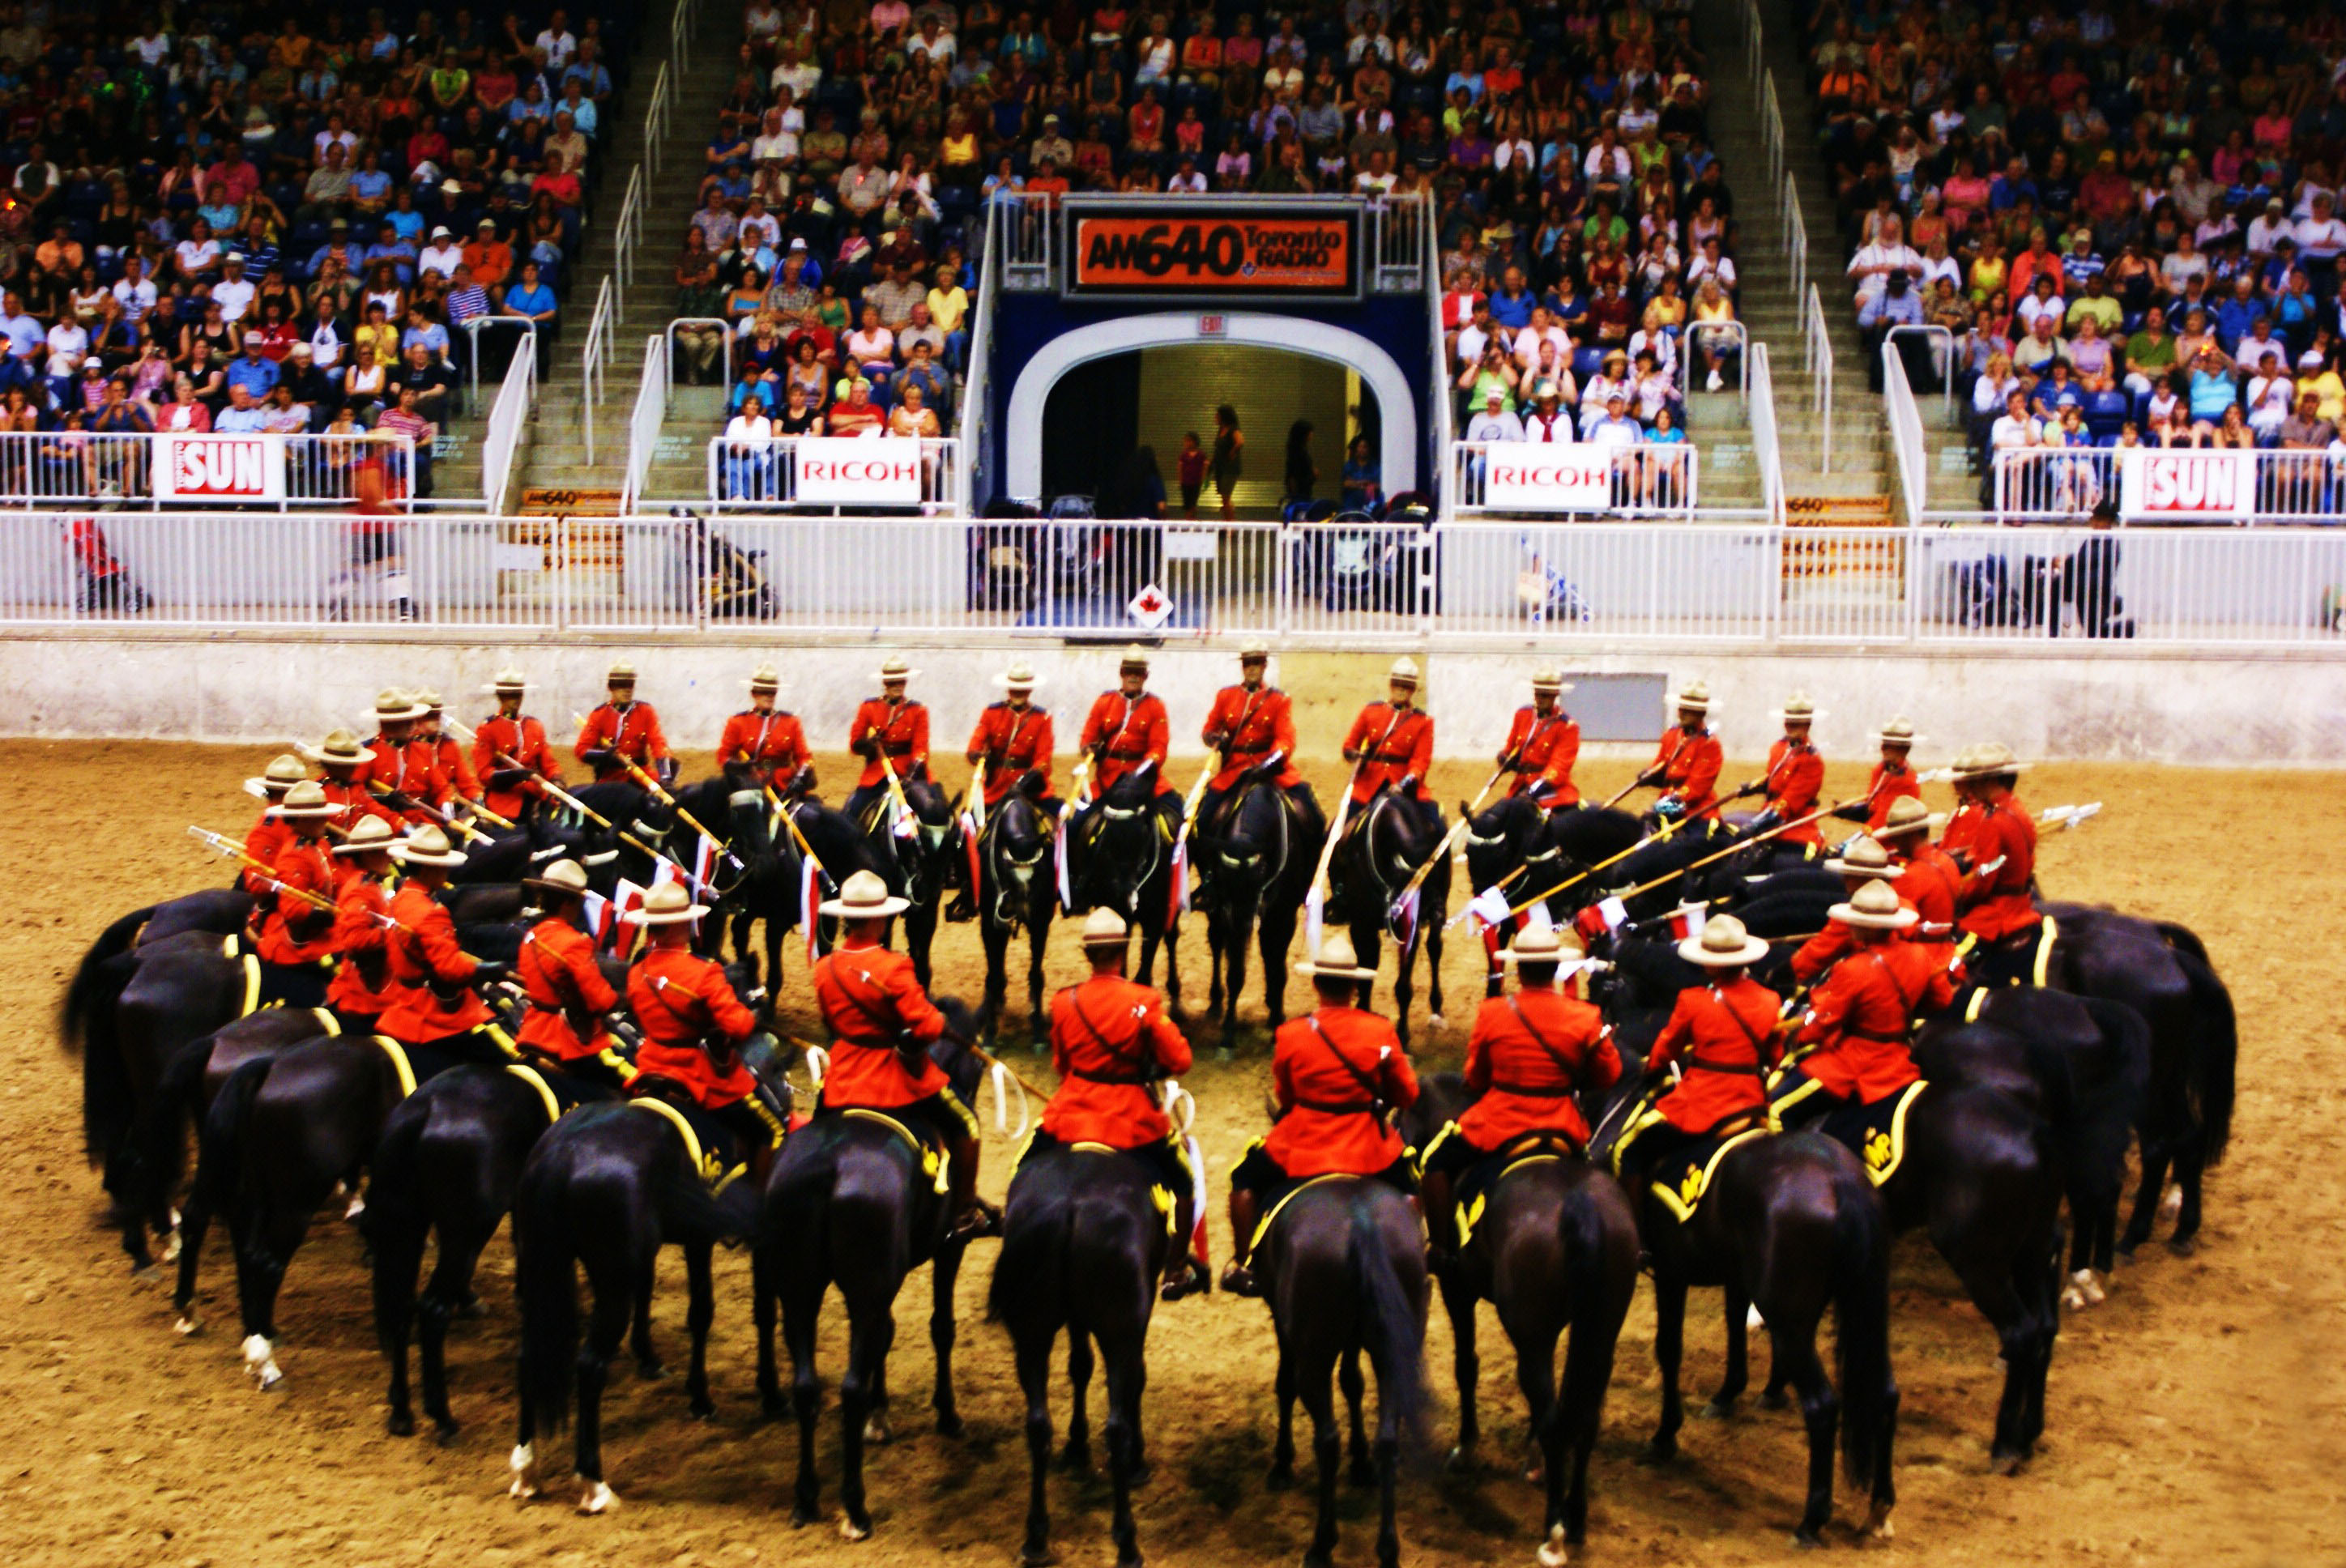 The Royal Canadian Mounties by MShah123